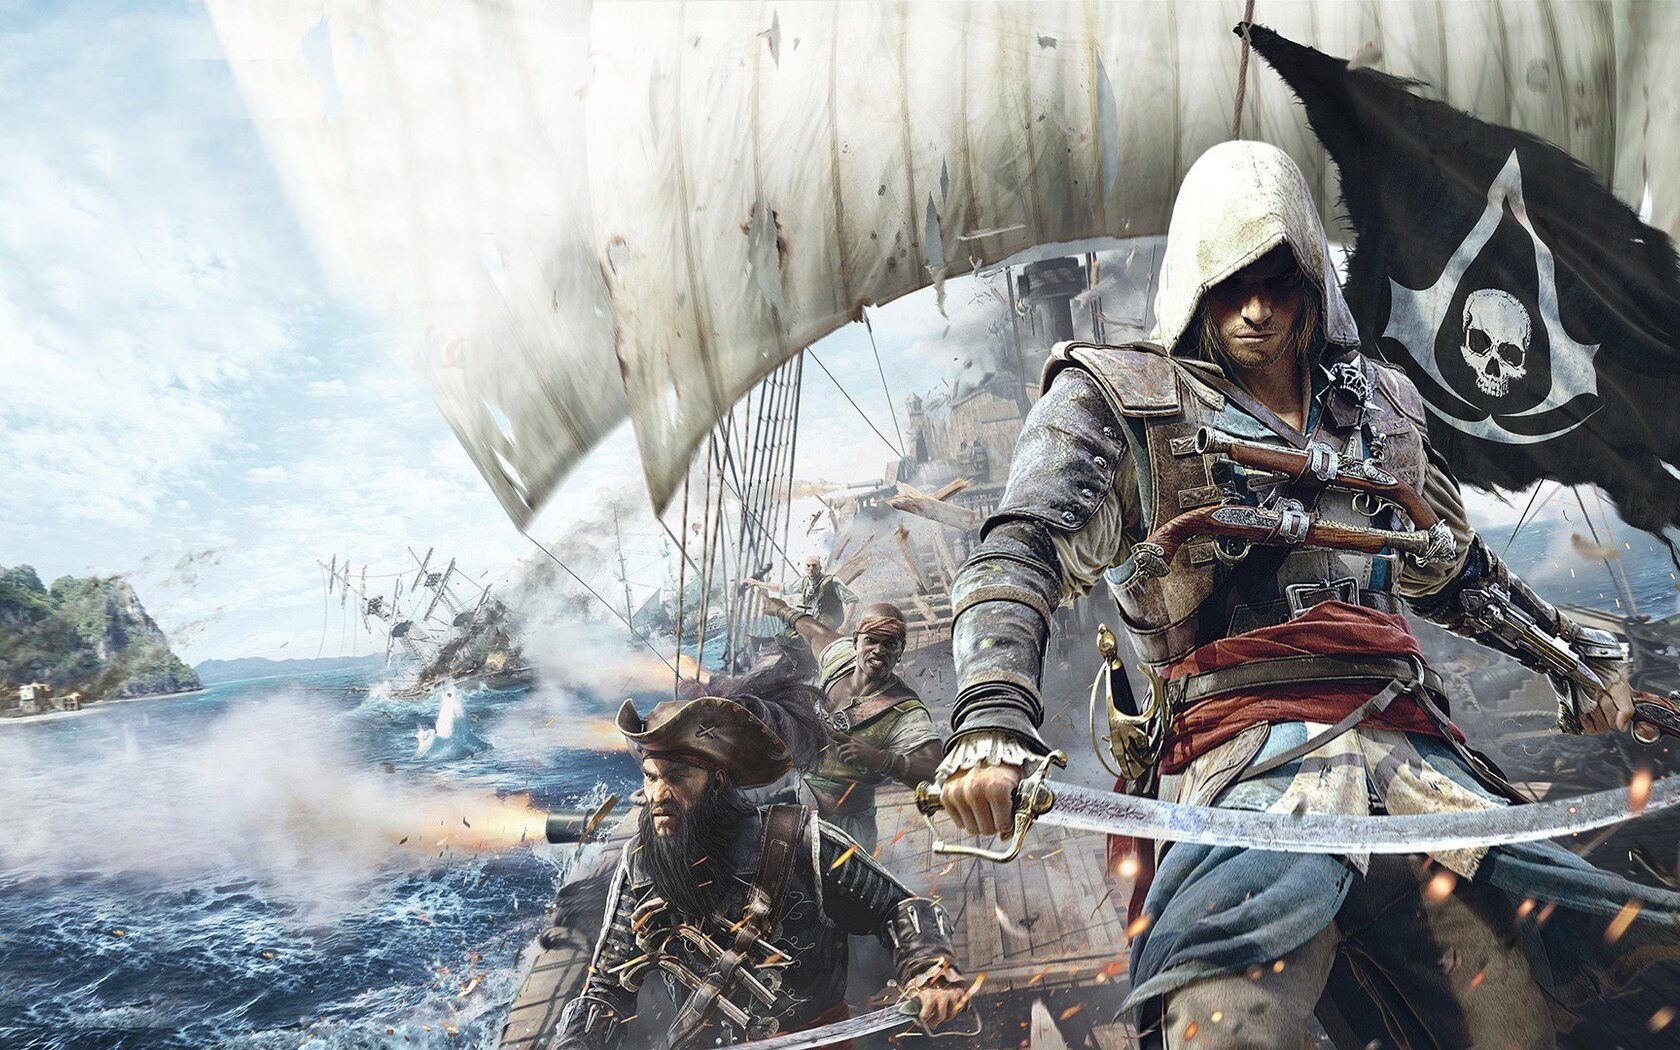 1680x1050 Assassins Creed 4 Black Flag 1680x1050 Resolution Hd 4k